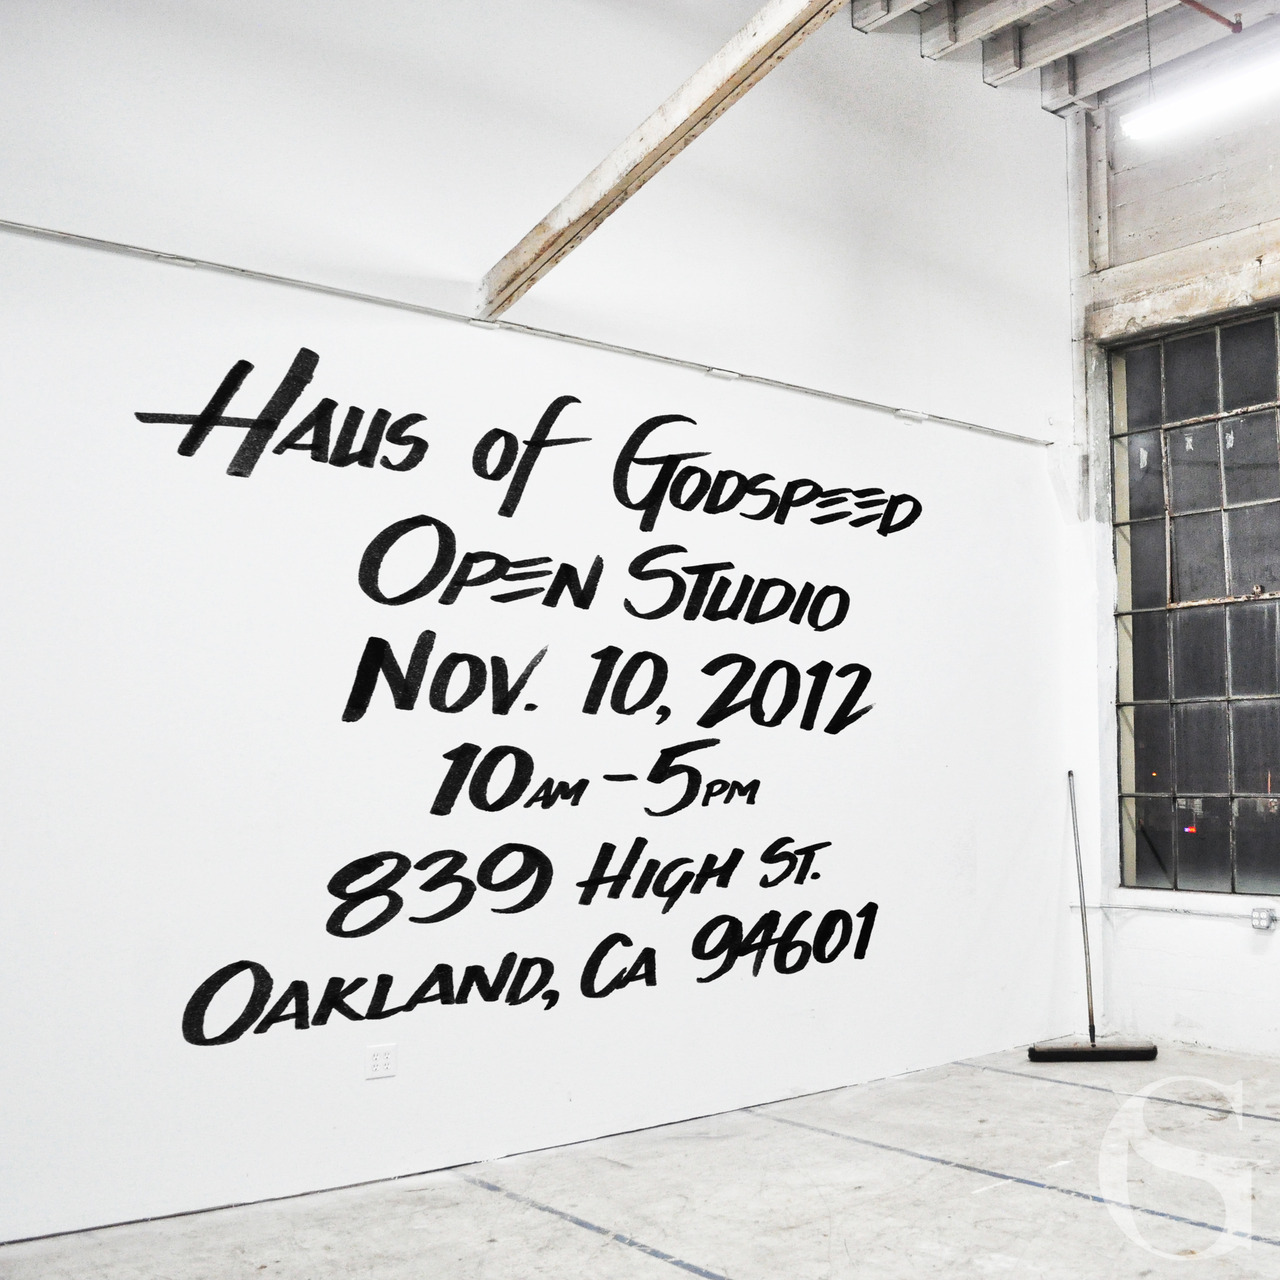 HAUS OF GODSPEEDOPEN STUDIONOV. 10, 201210AM-5PM839 HIGH ST.OAKLAND, CA 94601